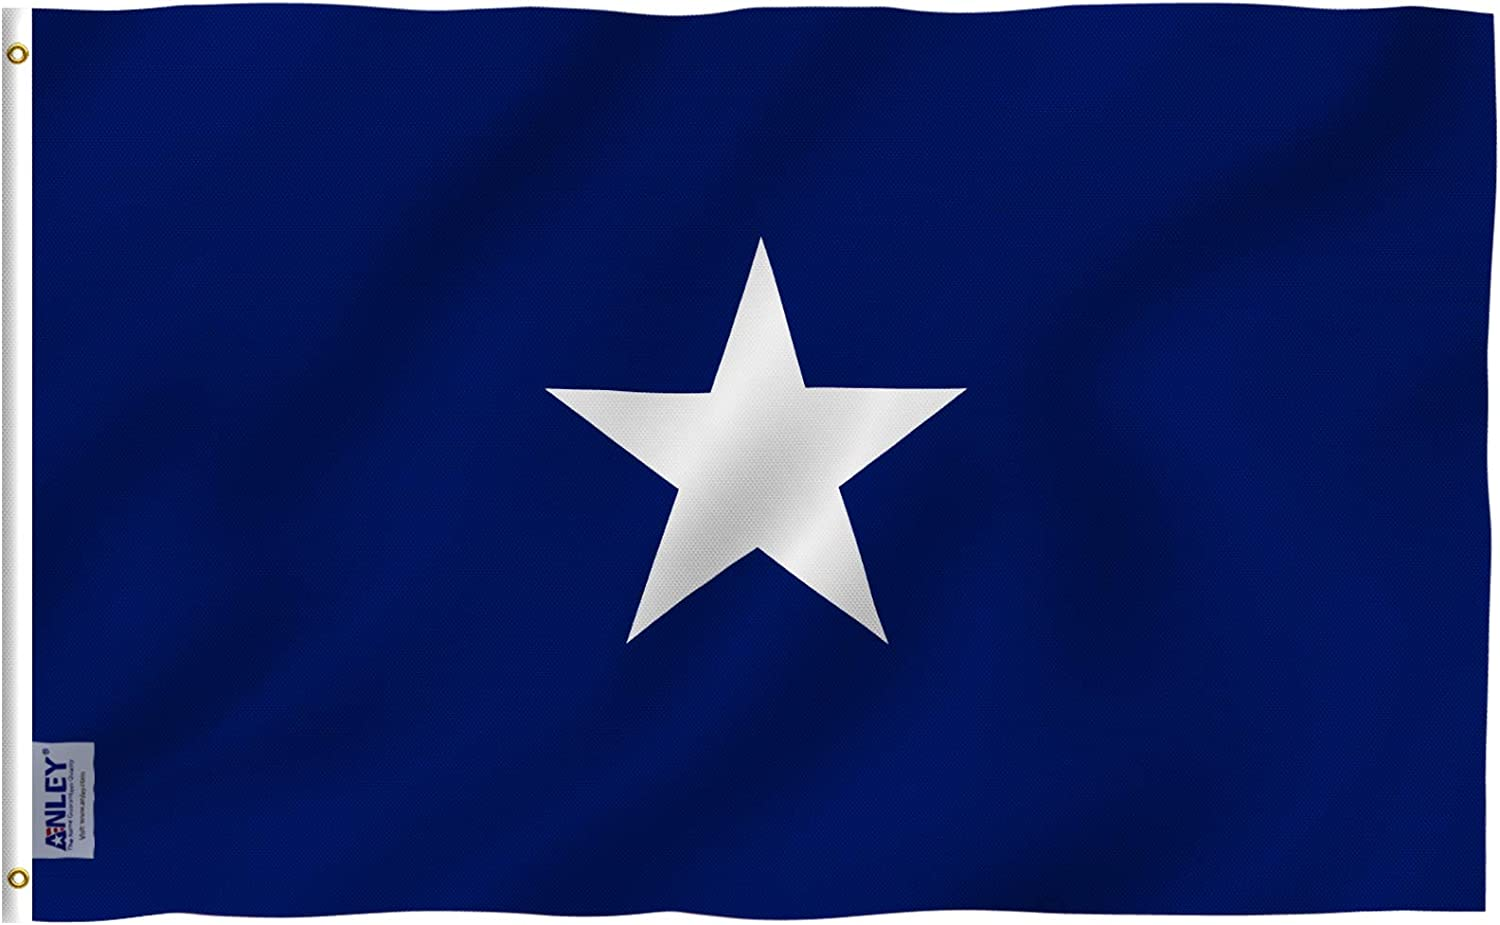 Anley Fly Breeze 3x5 Foot Bonnie Blue Flag - Vivid Color and Fade Proof - Canvas Header and Double Stitched - Bonnie Blue Flags Polyester with Brass Grommets 3 X 5 Ft